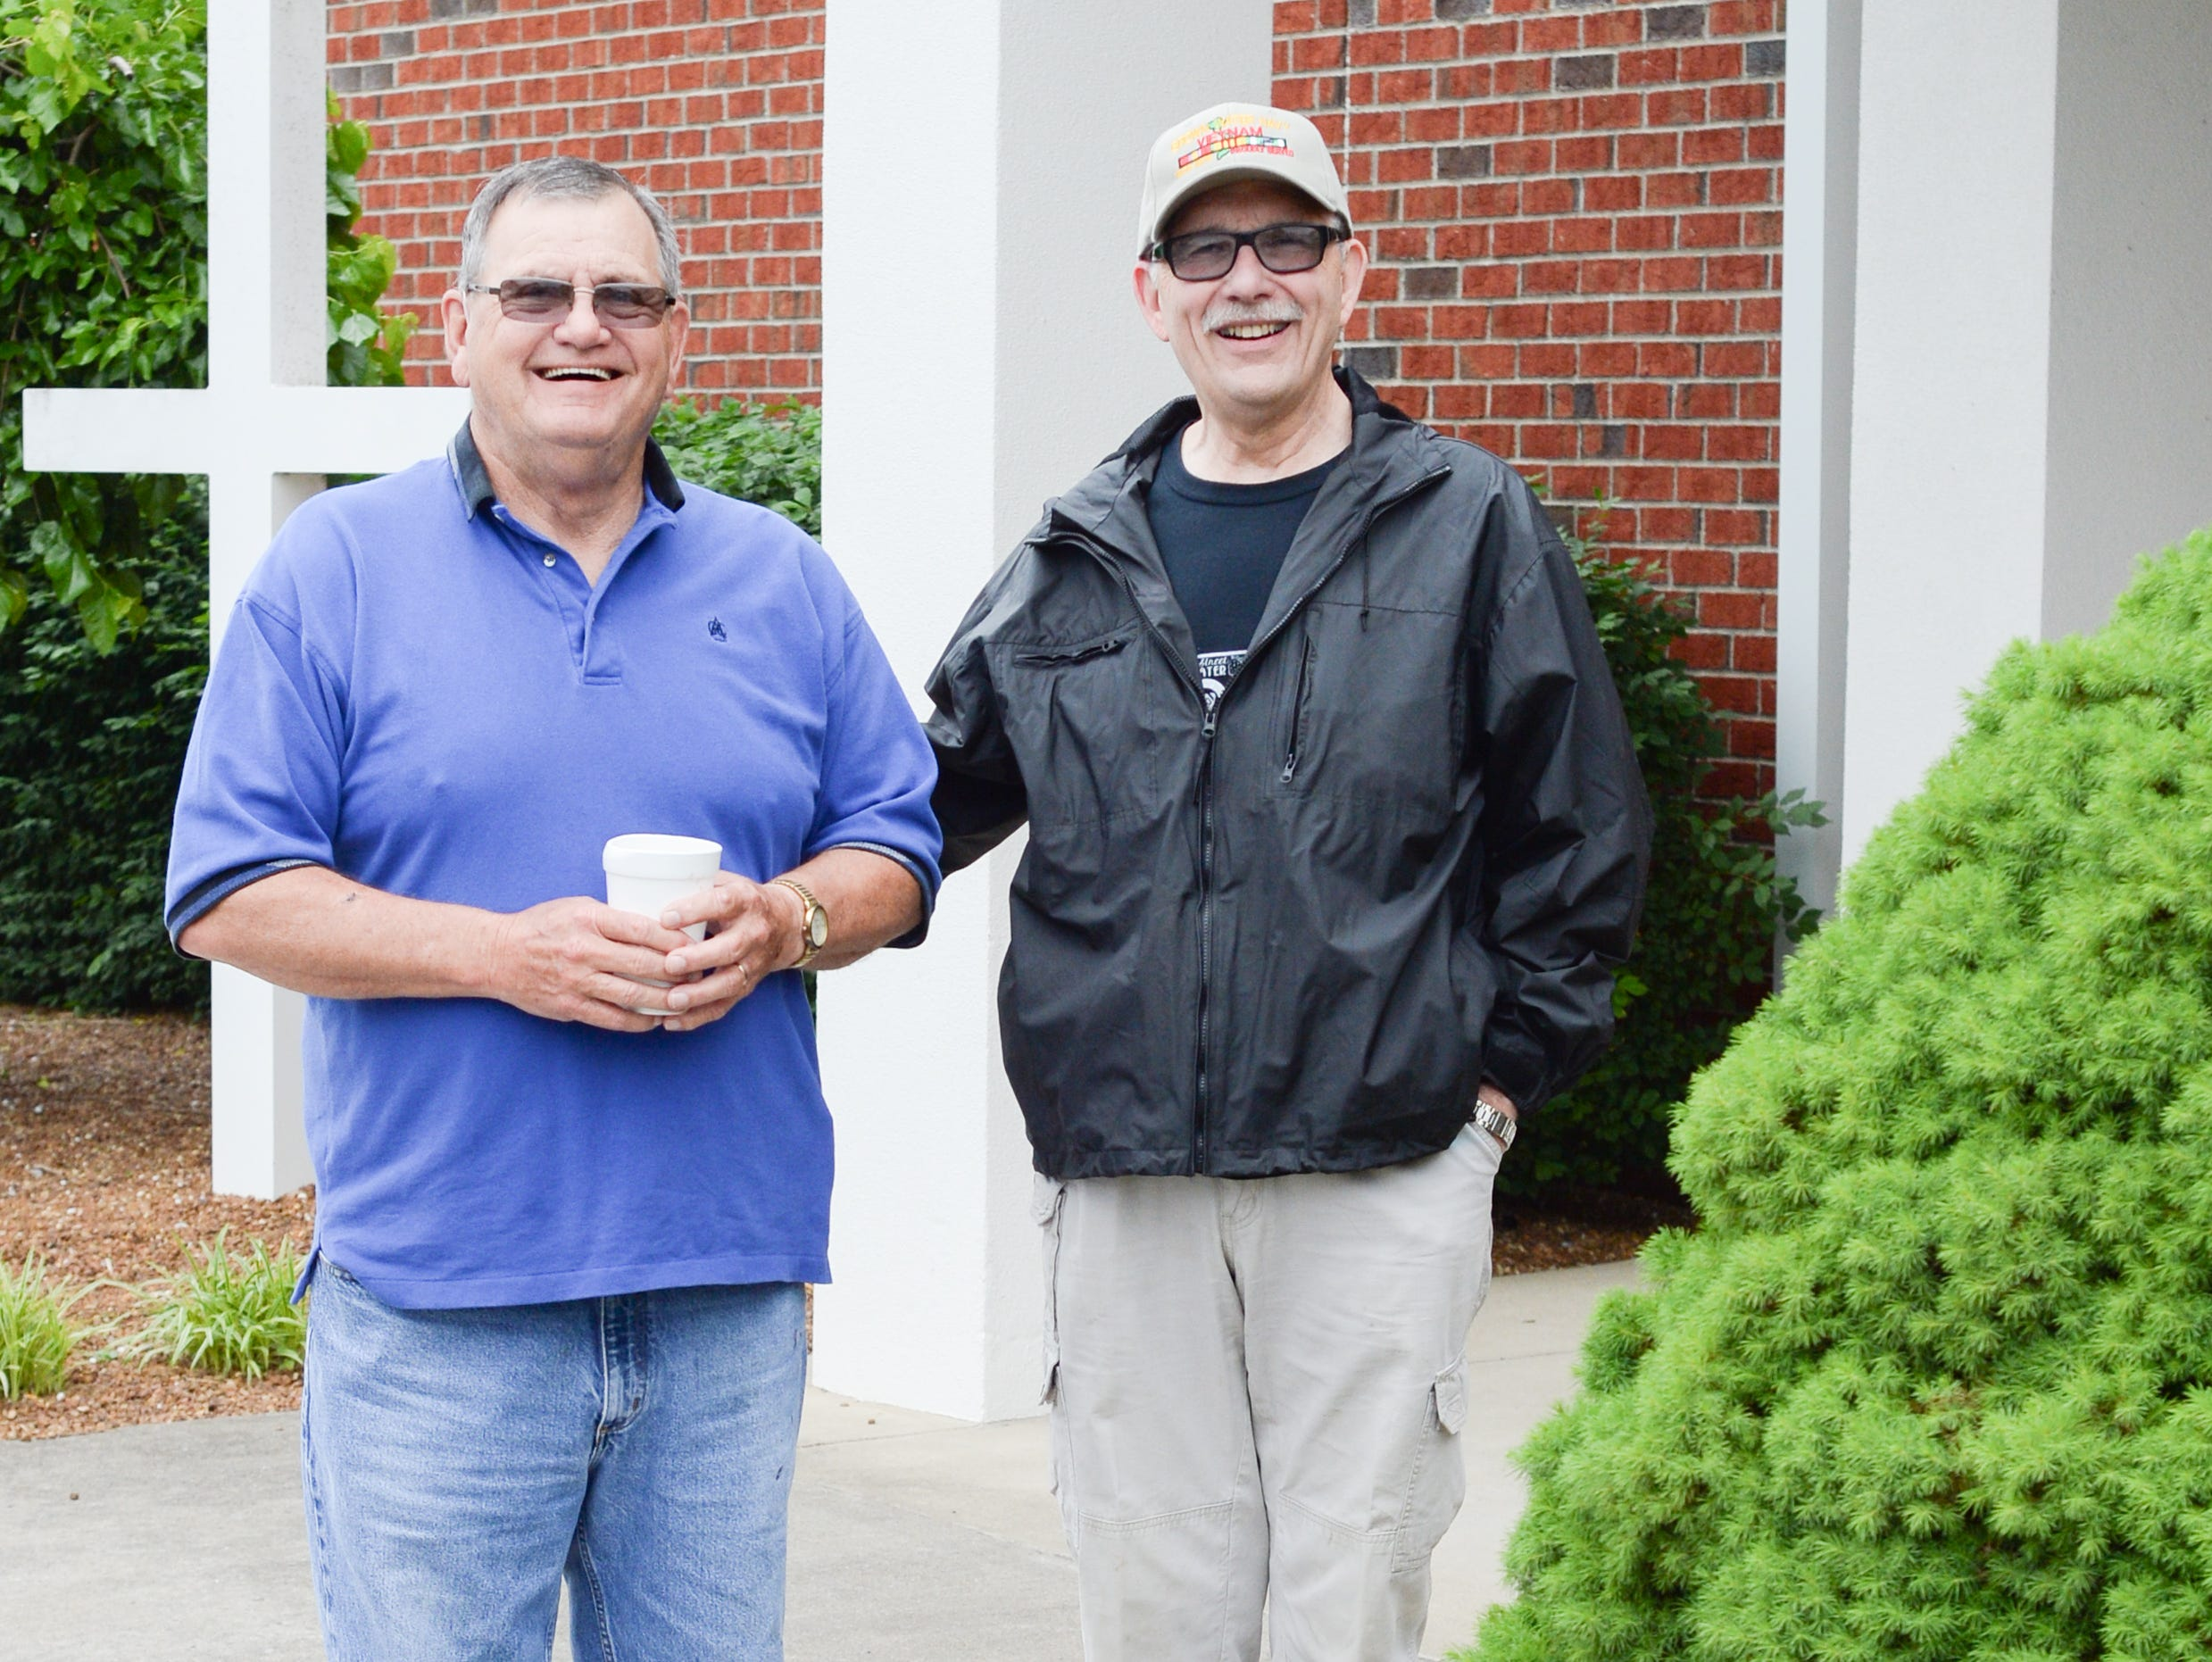 Ron Renfro and John Kerley chat outside during the Strawberry Festival Pancake Breakfast & Silent Auction presented by the Portland Rotary Club & Portland FFA at First Baptist Church Portland on Saturday, May 11.